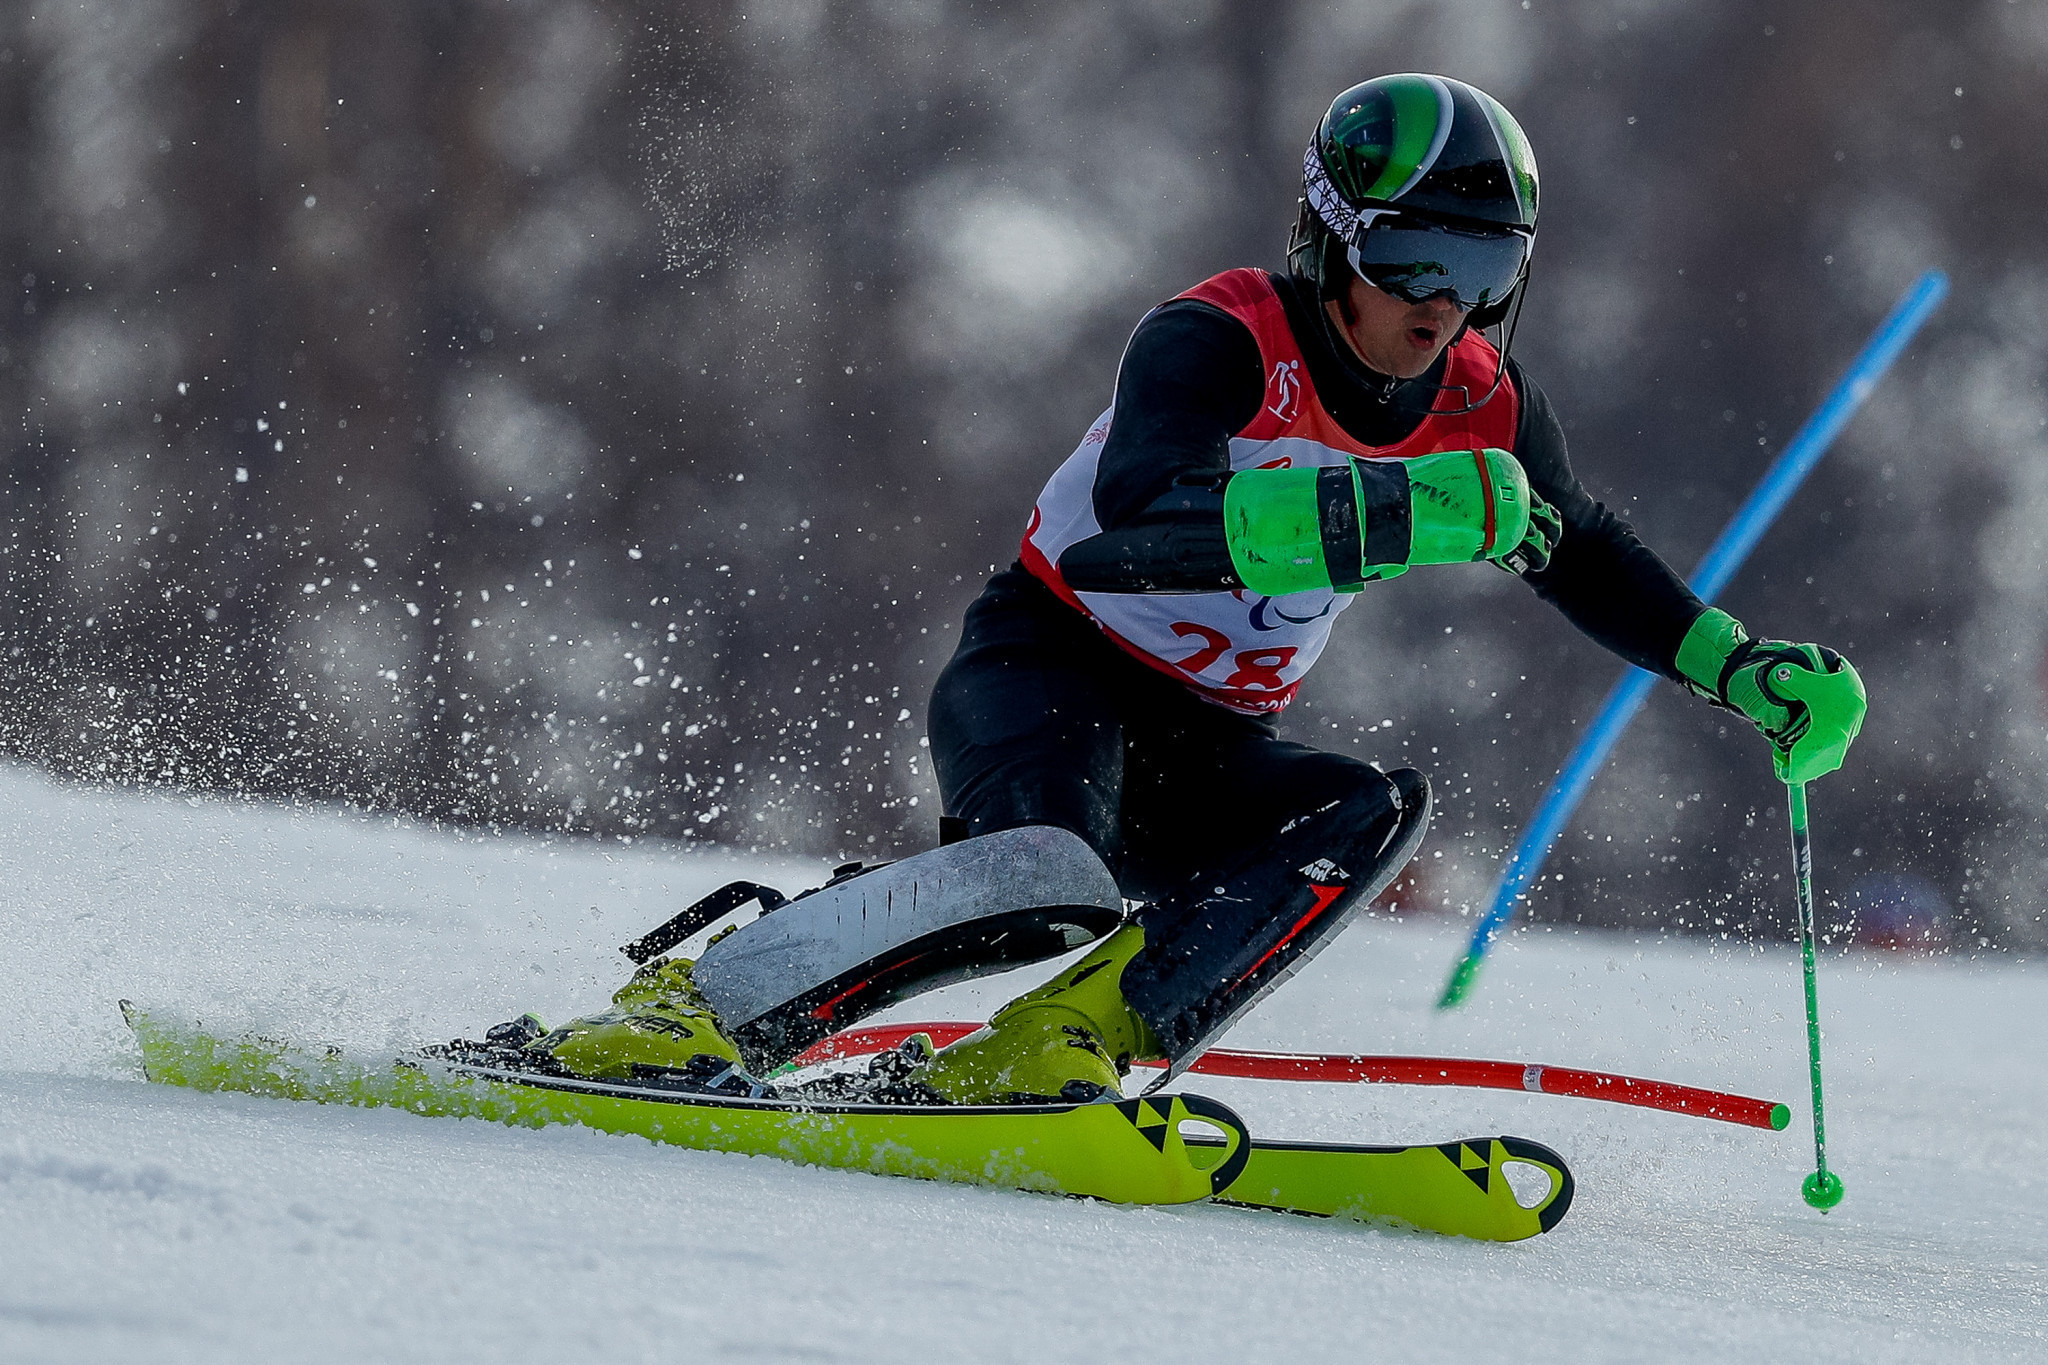 Bugaev maintains winning momentum at World Para Alpine Skiing World Cup